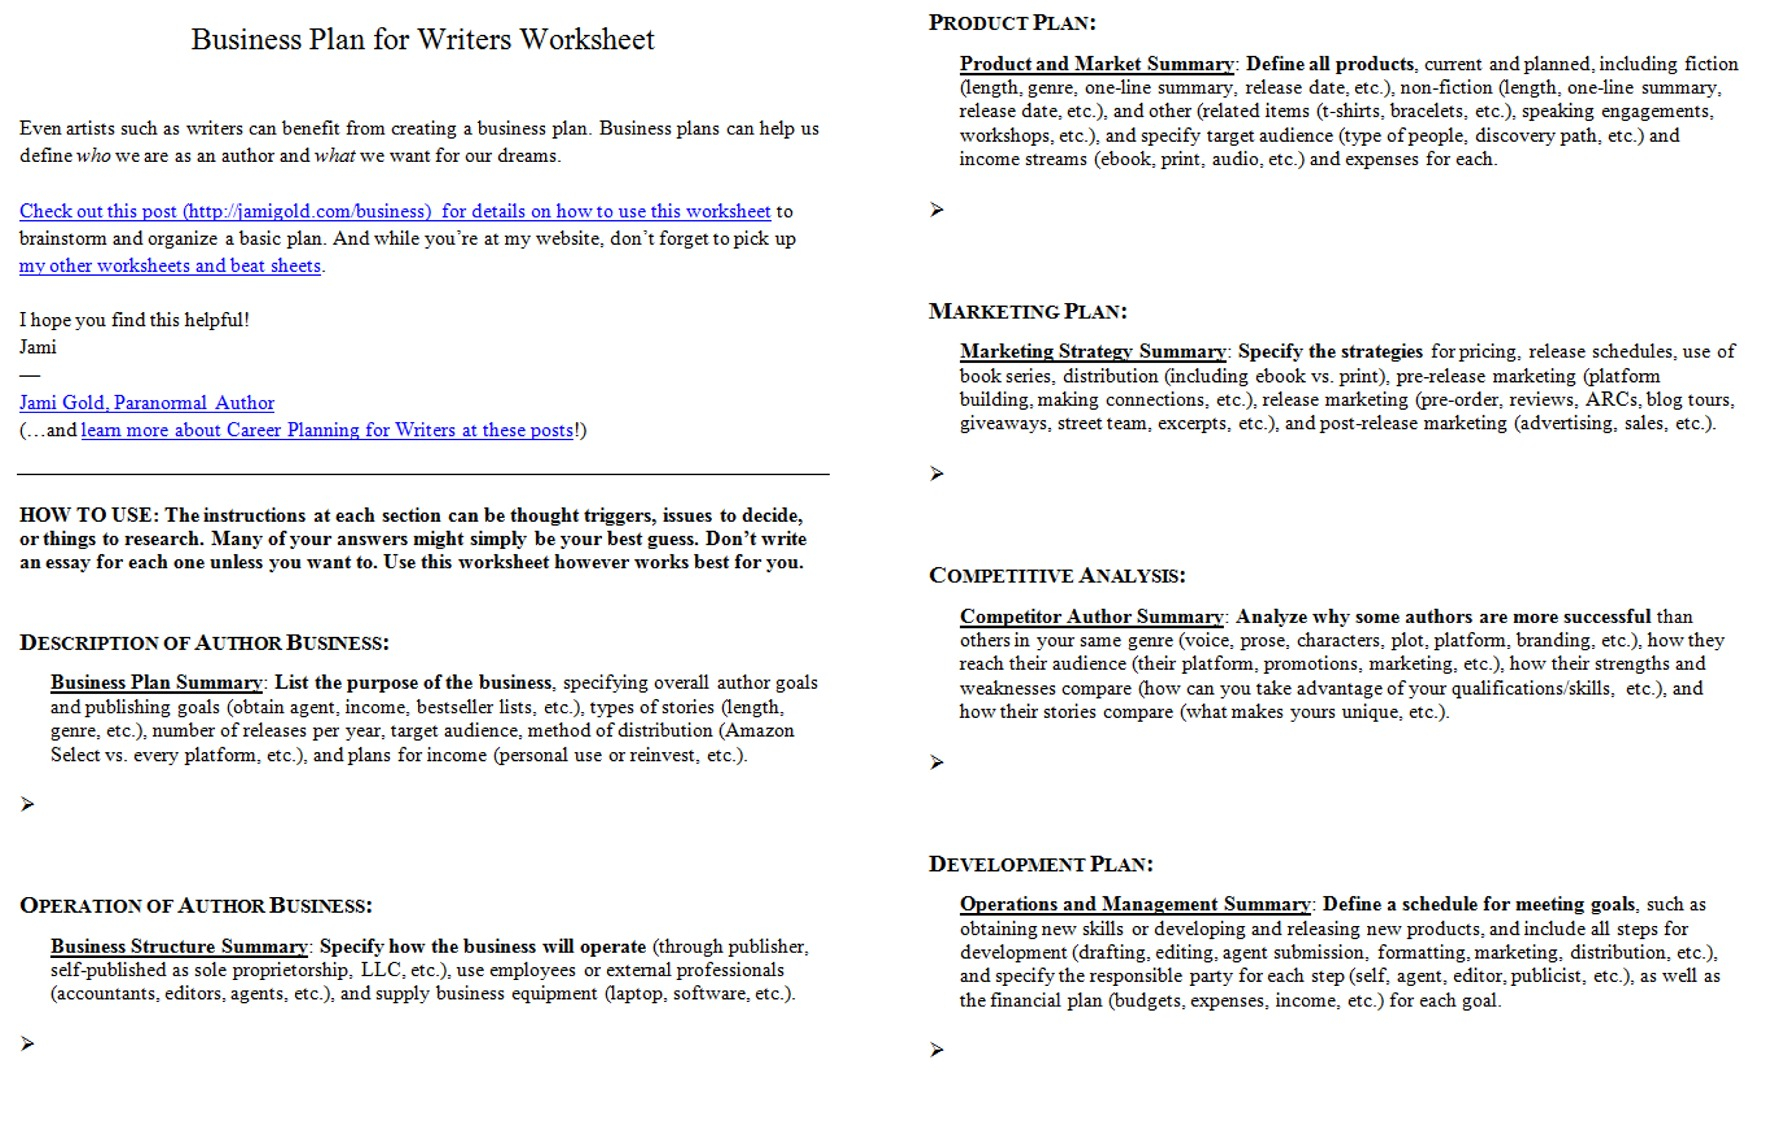 Weirdmailus  Unique Worksheets For Writers  Jami Gold Paranormal Author With Great Screen Shot Of Both Pages Of The Business Plan For Writers Worksheet With Endearing Fun Literacy Worksheets Also Present Perfect Continuous Tense Worksheet In Addition Worksheets In English And Worksheet On Division For Grade  As Well As Grade  Math Algebra Worksheets Additionally Yr  English Worksheets From Jamigoldcom With Weirdmailus  Great Worksheets For Writers  Jami Gold Paranormal Author With Endearing Screen Shot Of Both Pages Of The Business Plan For Writers Worksheet And Unique Fun Literacy Worksheets Also Present Perfect Continuous Tense Worksheet In Addition Worksheets In English From Jamigoldcom